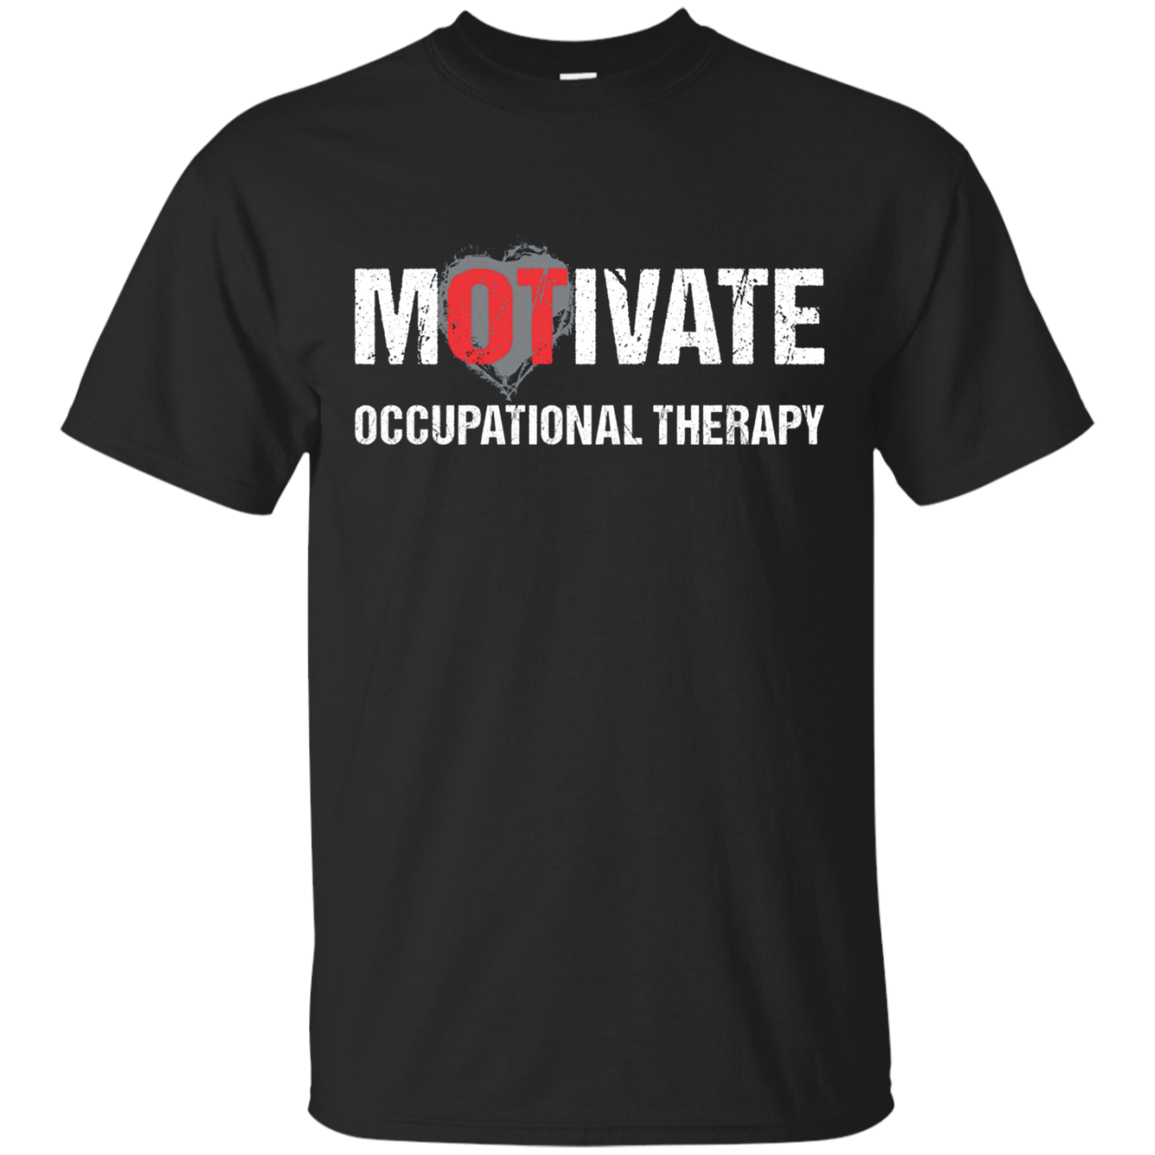 Occupational Therapy Tshirt Motivate Rehab OT Therapist Gift